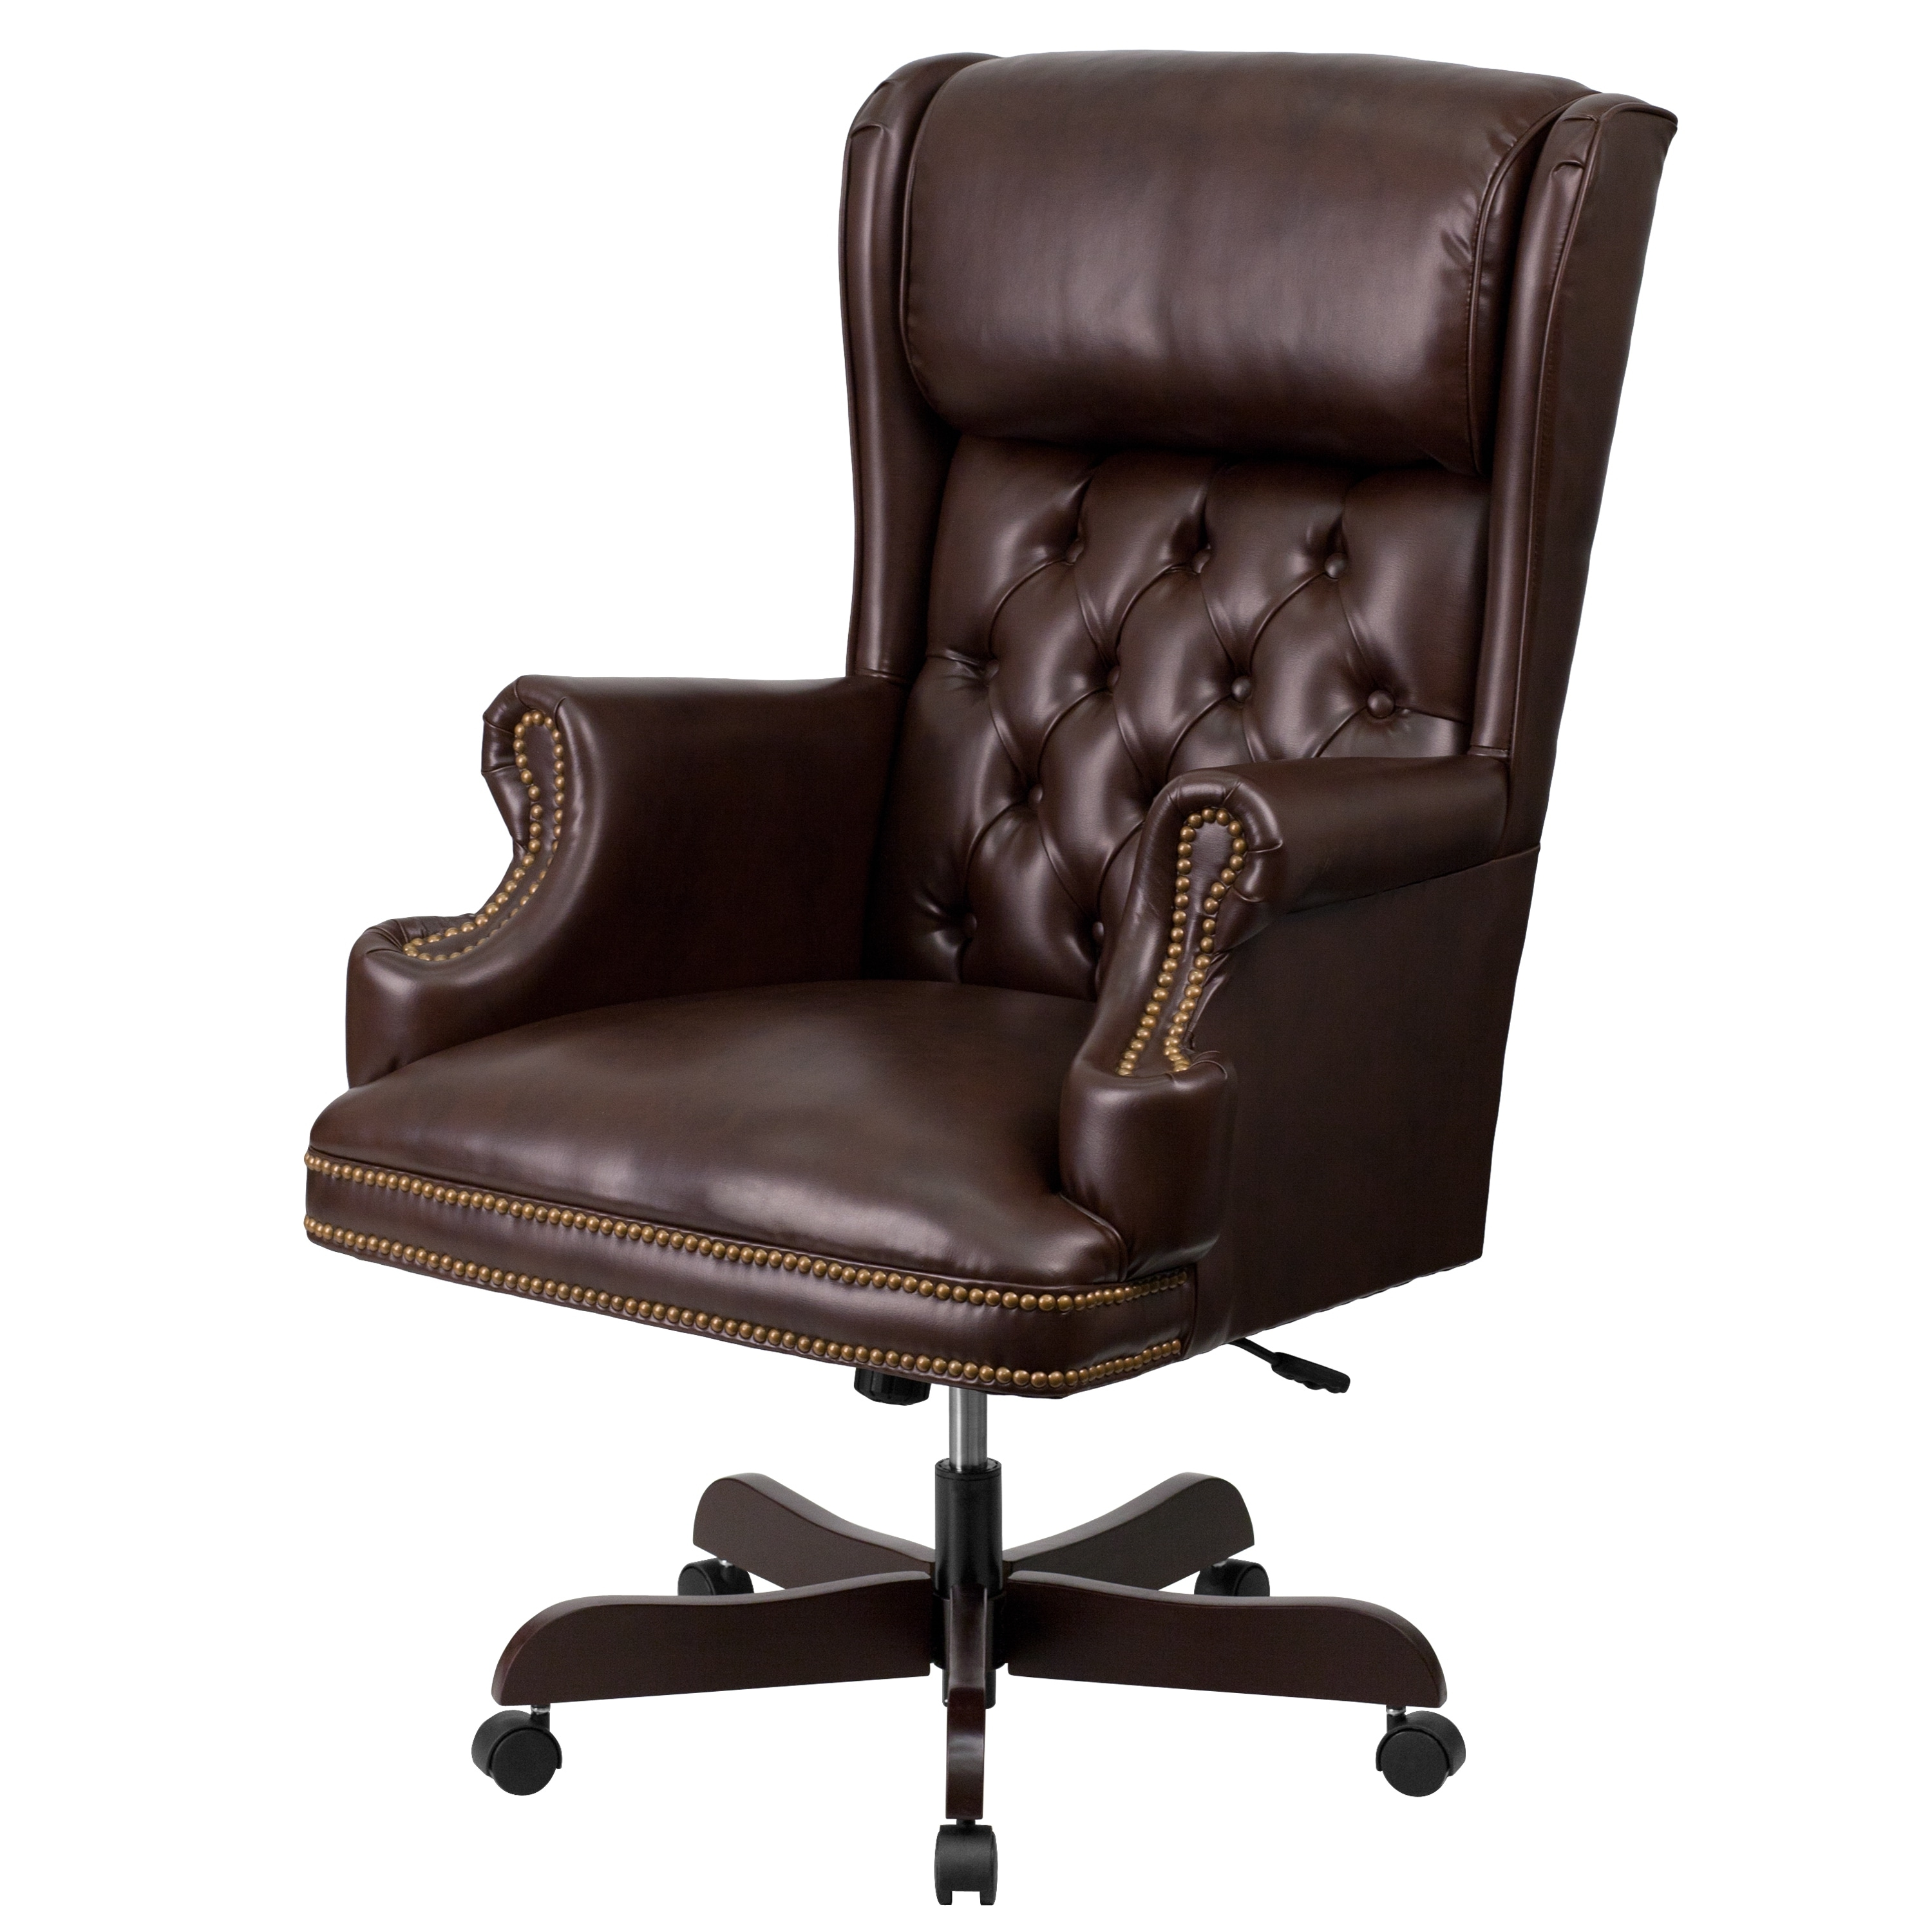 Wood And Leather Executive Office Chairs With Current High Back Traditional Tufted Leather Executive Office Chair – Free (View 9 of 20)